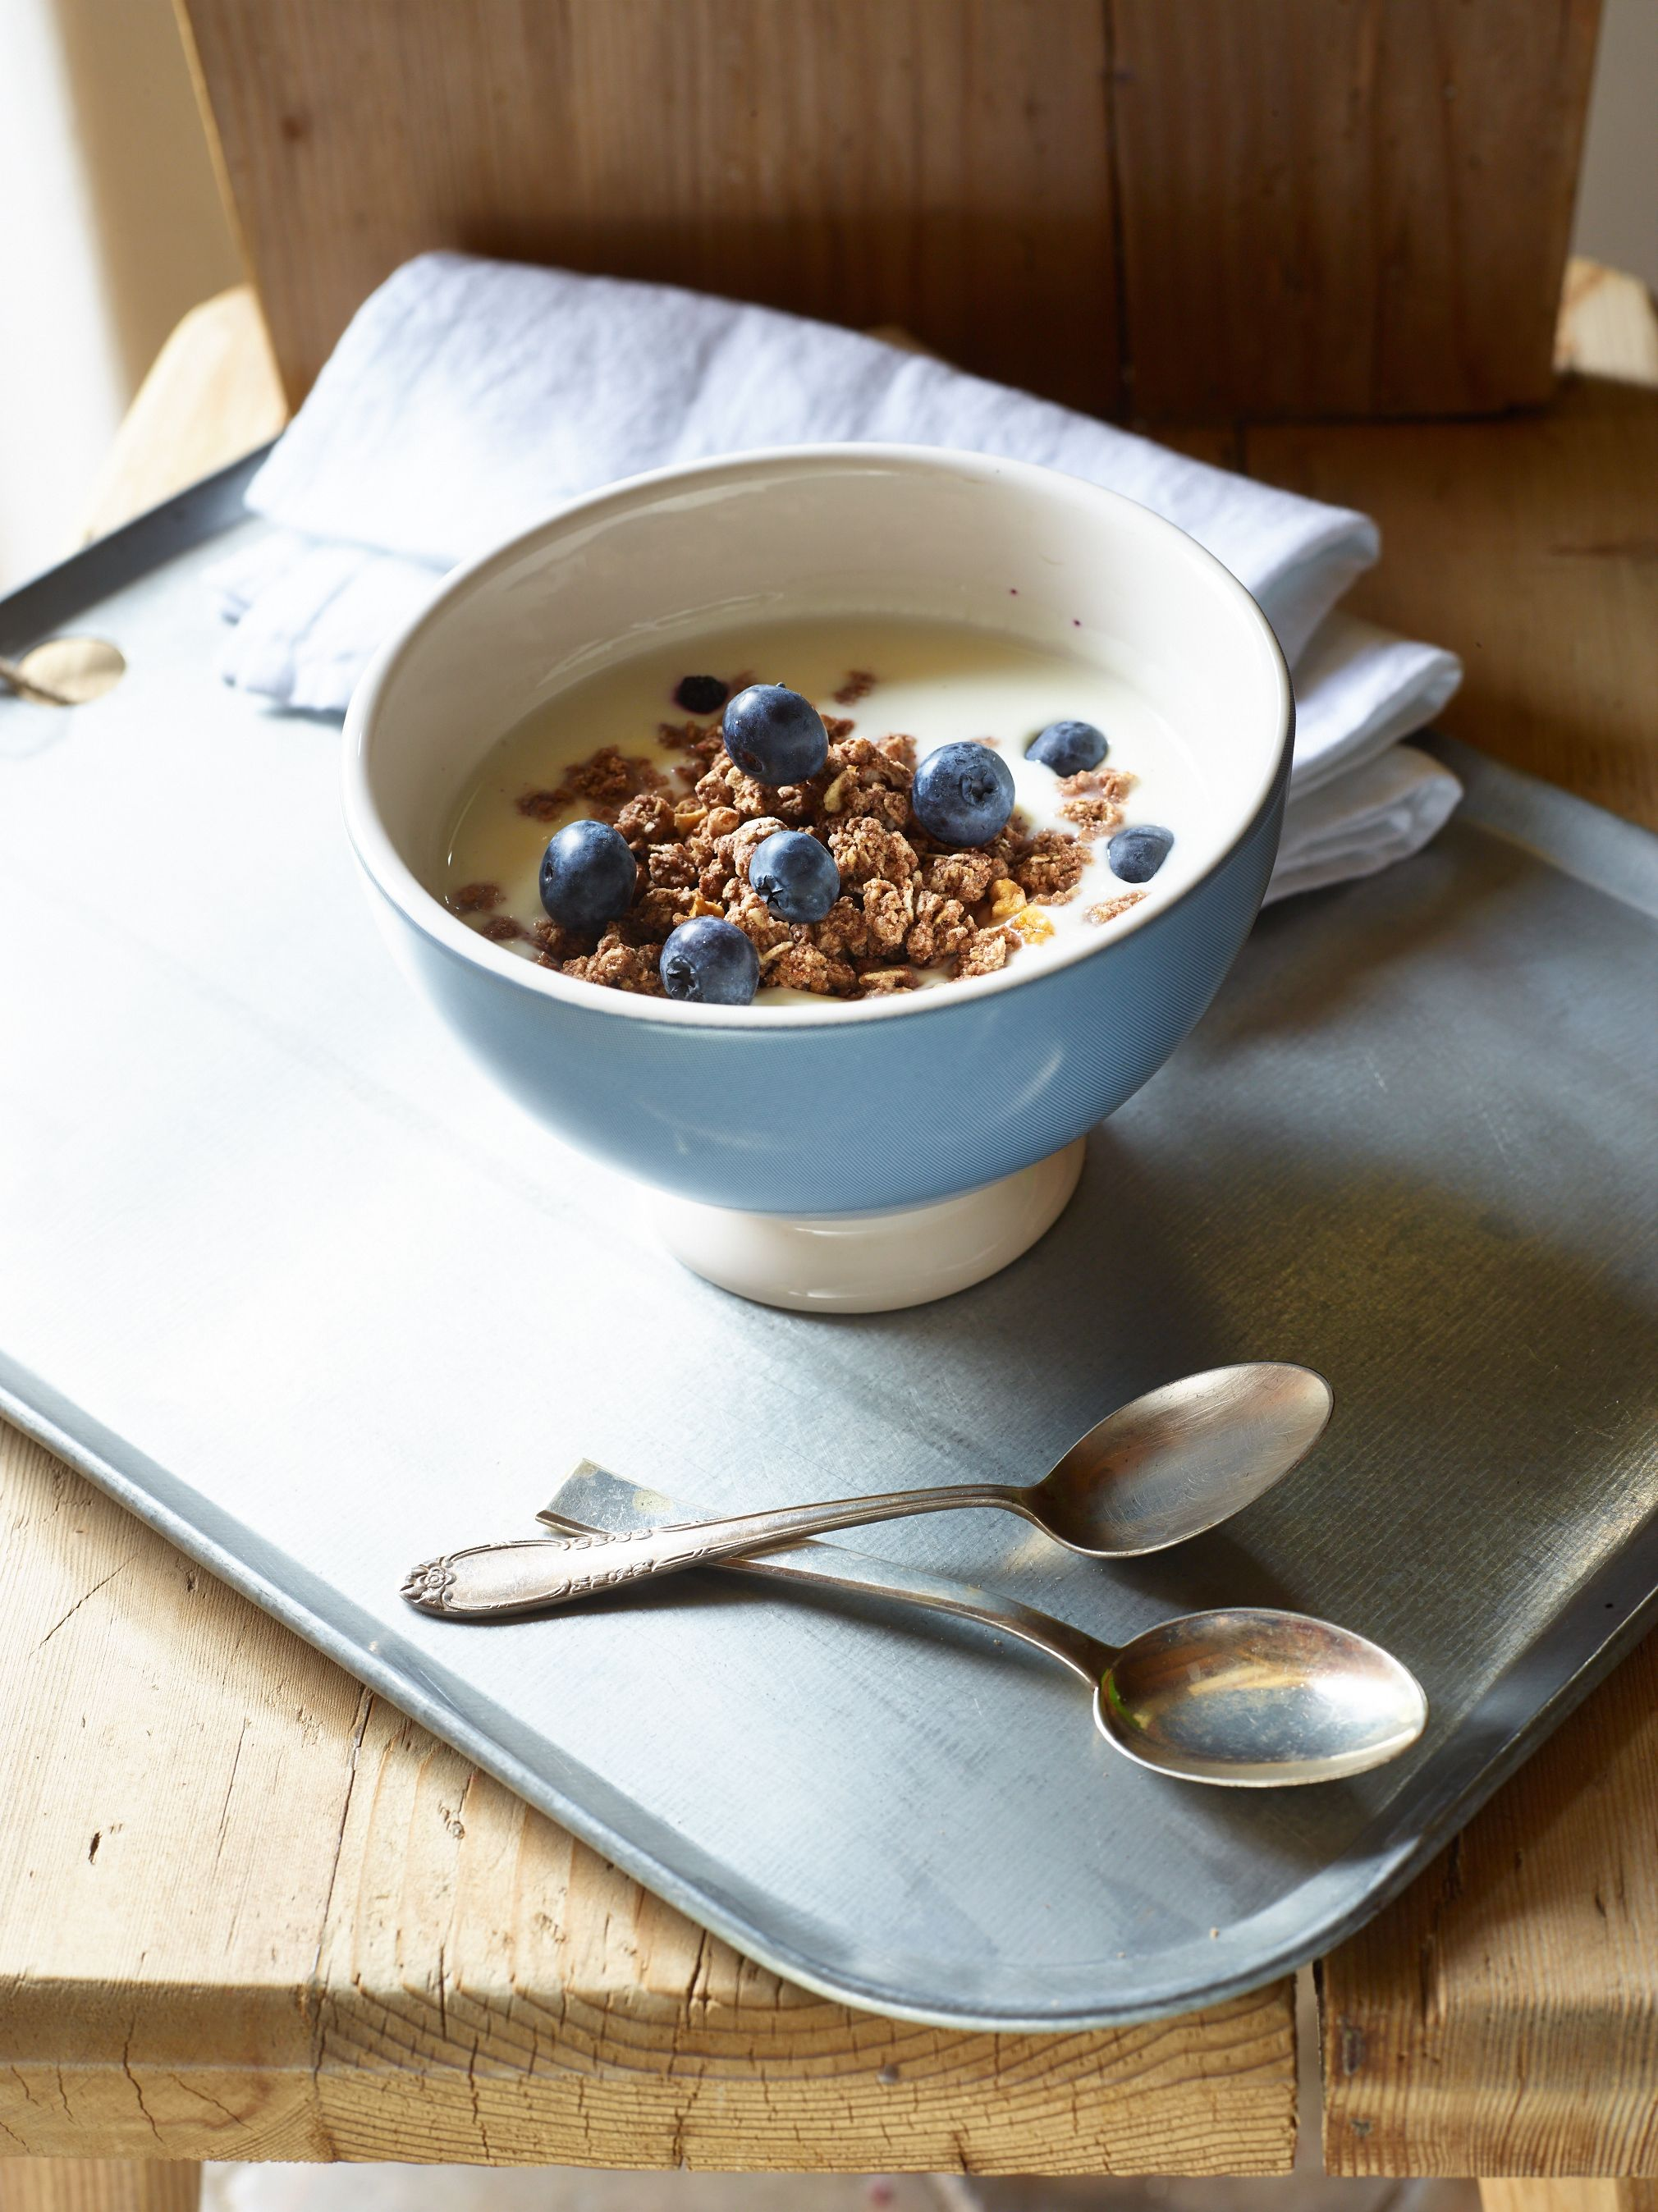 Crunchy Müsli Rezept Crunchy Muesli With Blueberries And Apple #breakfast, #